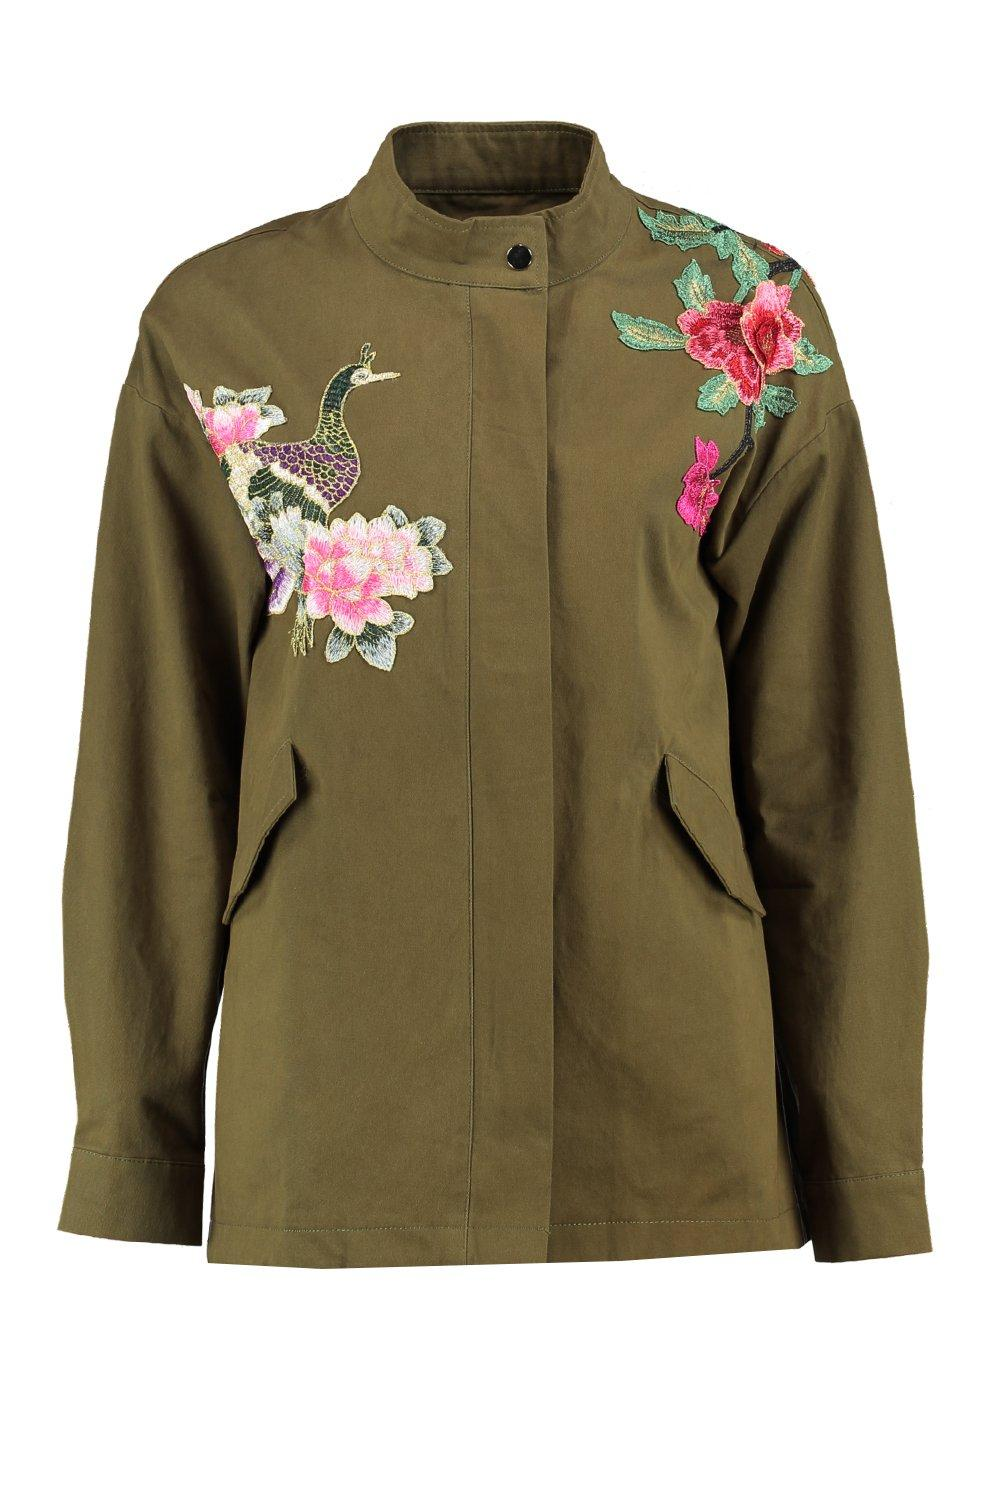 Womens floral jacket